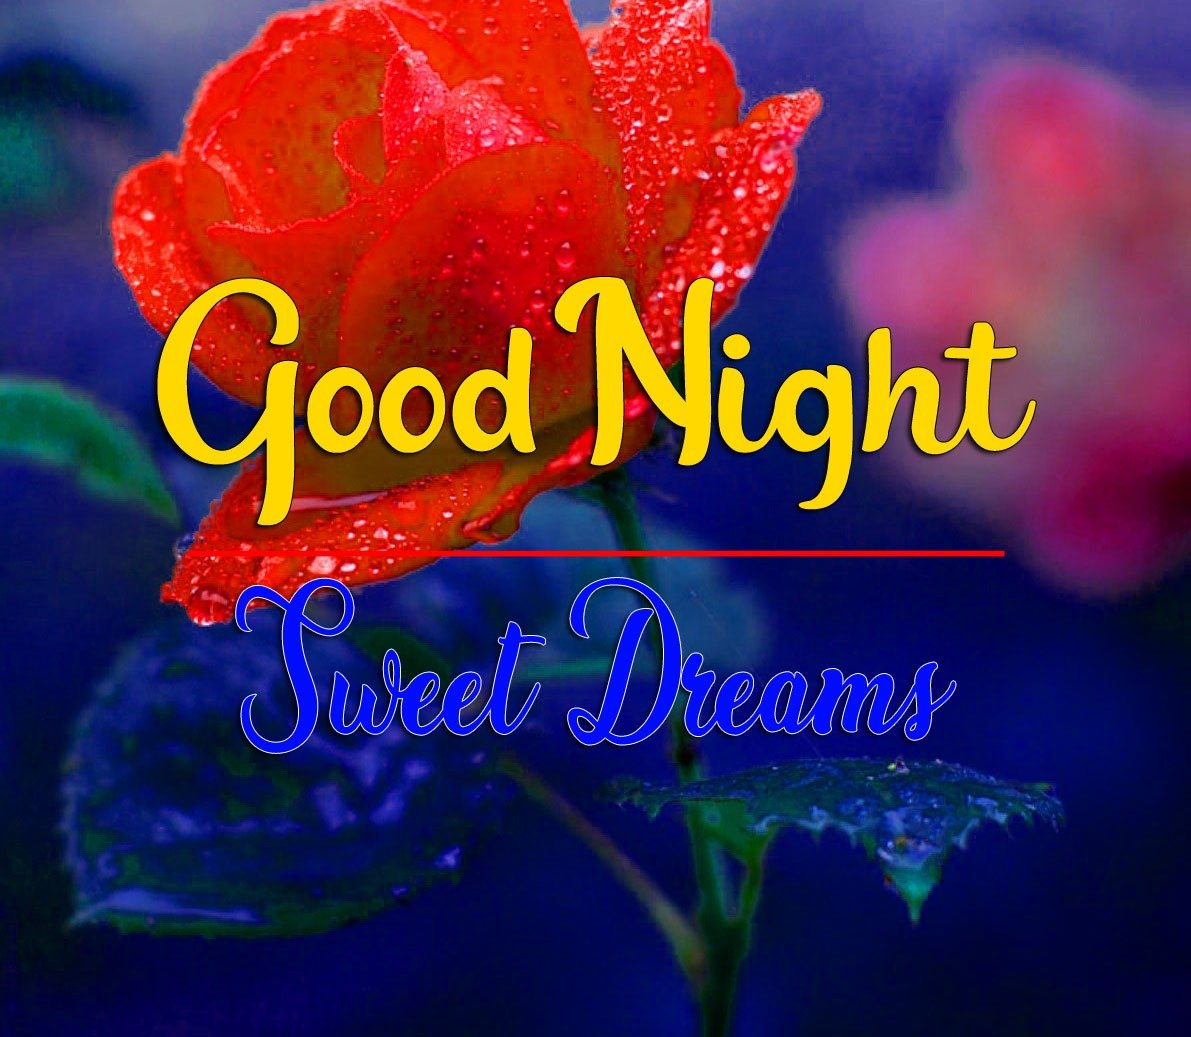 HD Good Night Photo for Facebook